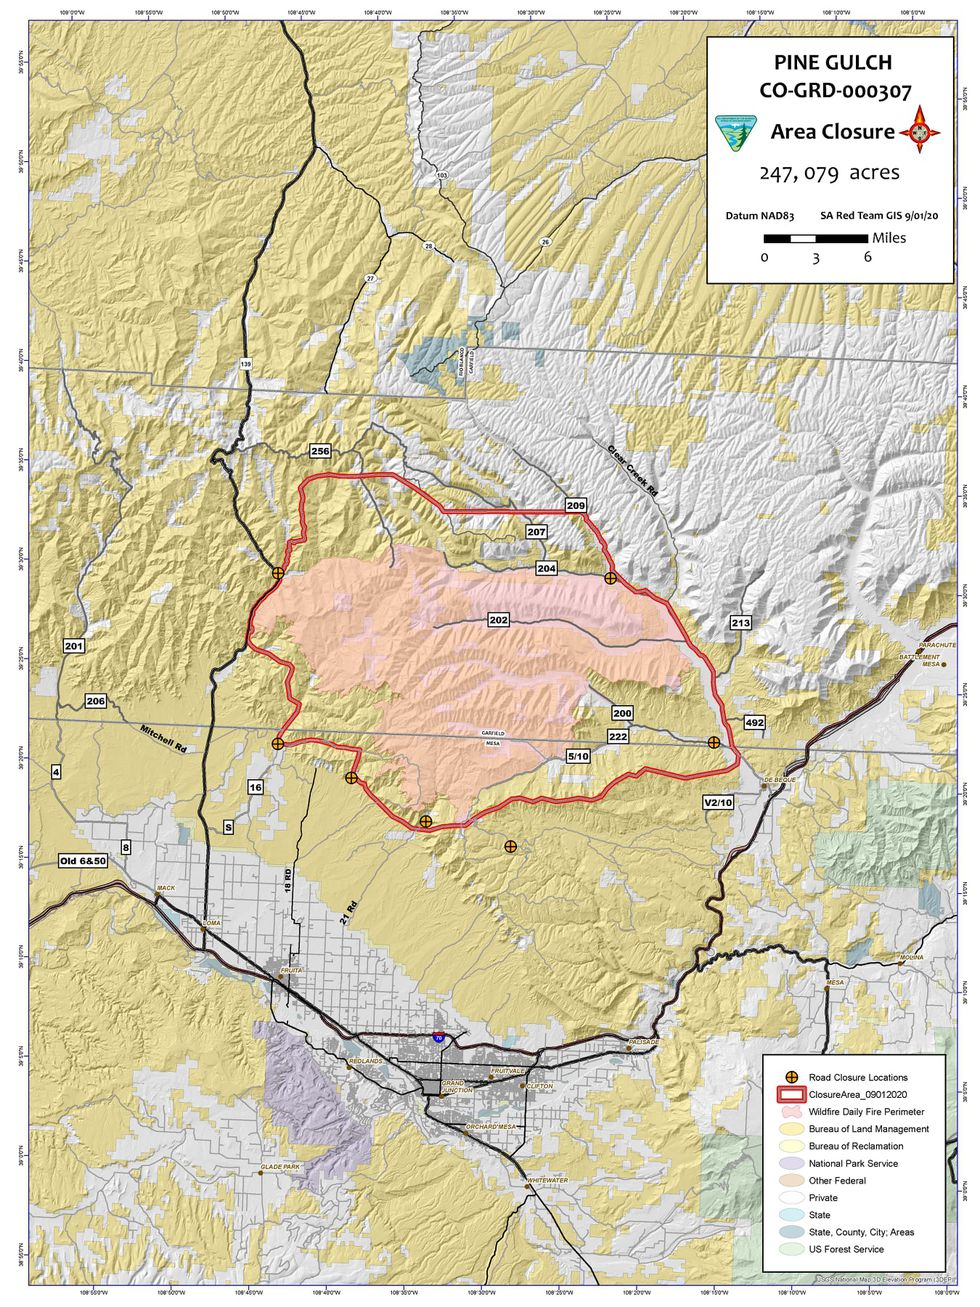 The BLM says that the closure is to ensure public and firefighter safety during suppression and rehabilitation efforts.